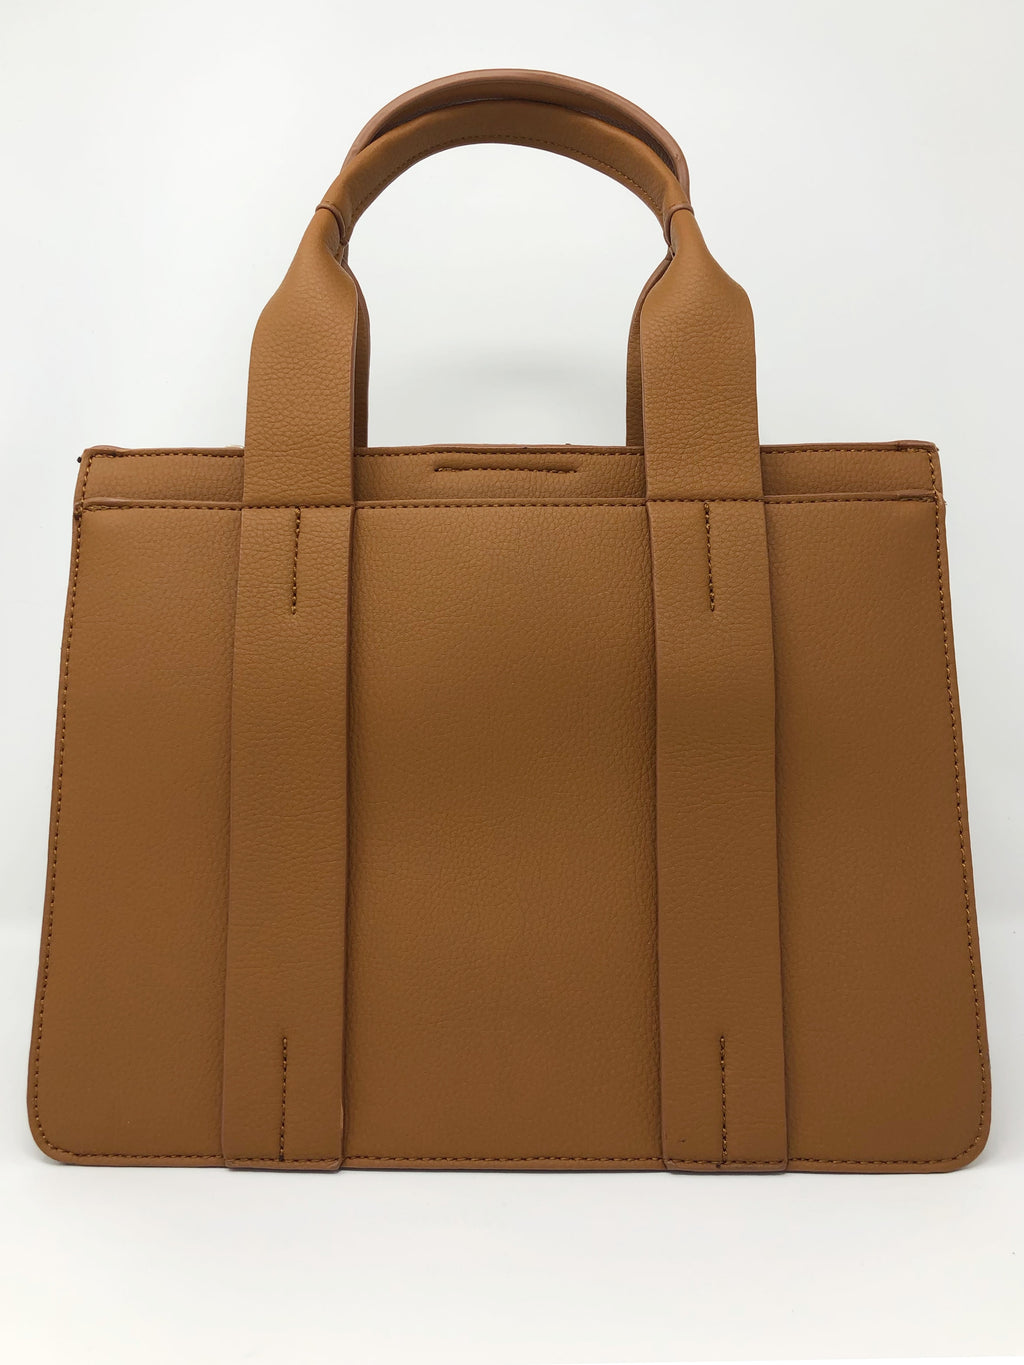 Sale! Kelly Bag in Tan